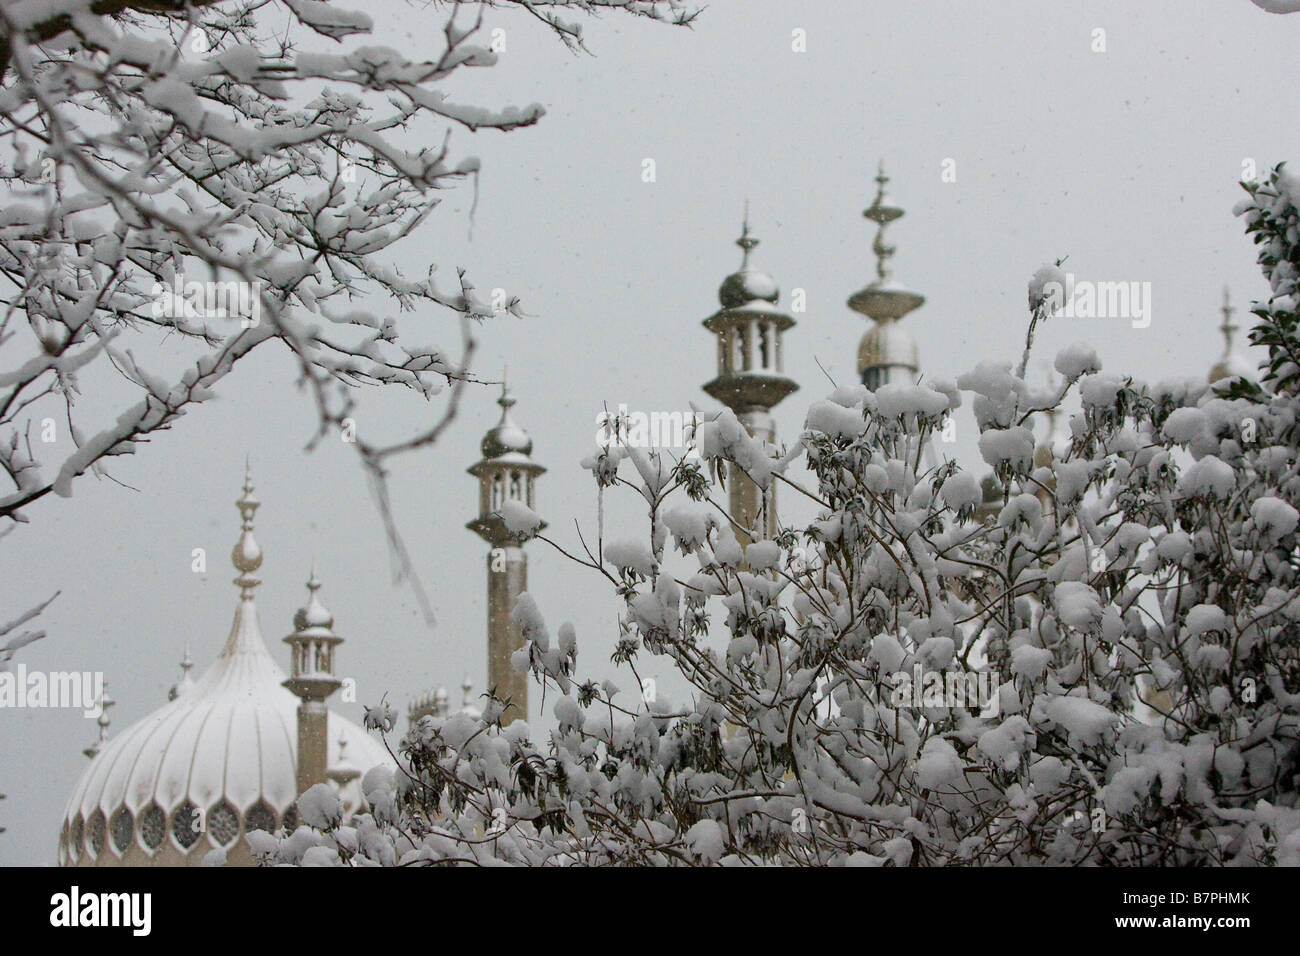 Ornate turrets and dome of the Royal Pavilion Brighton at dawn behind snow covered bushes and tree. Stock Photo